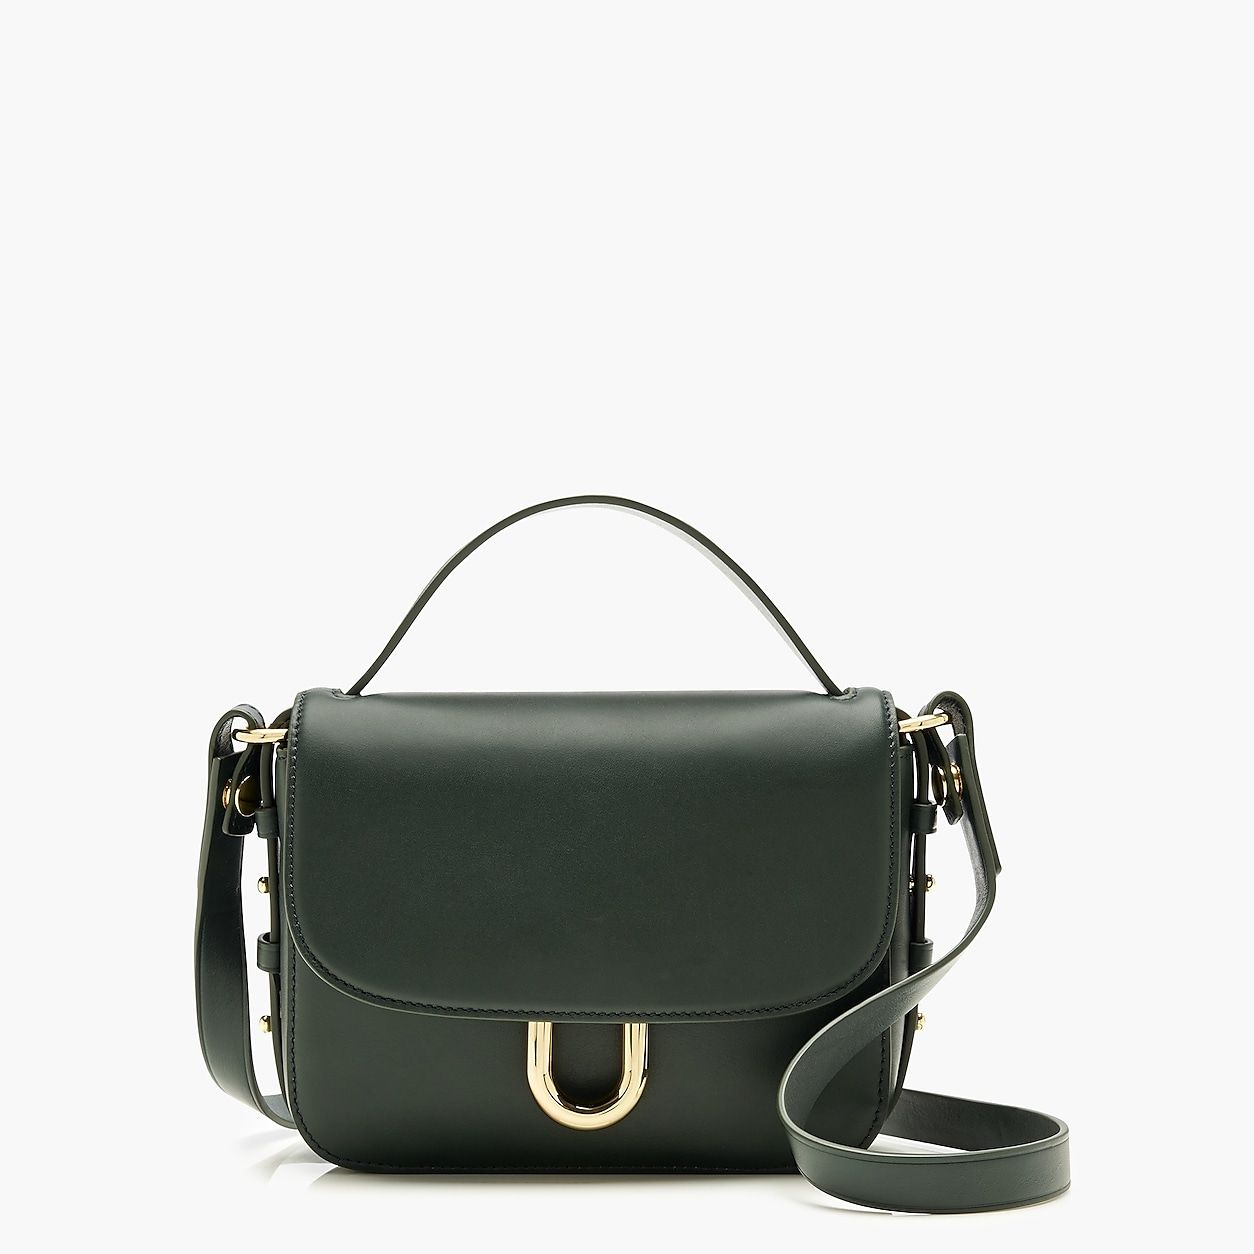 b7849746d2 Harper Crossbody Bag In Italian Leather